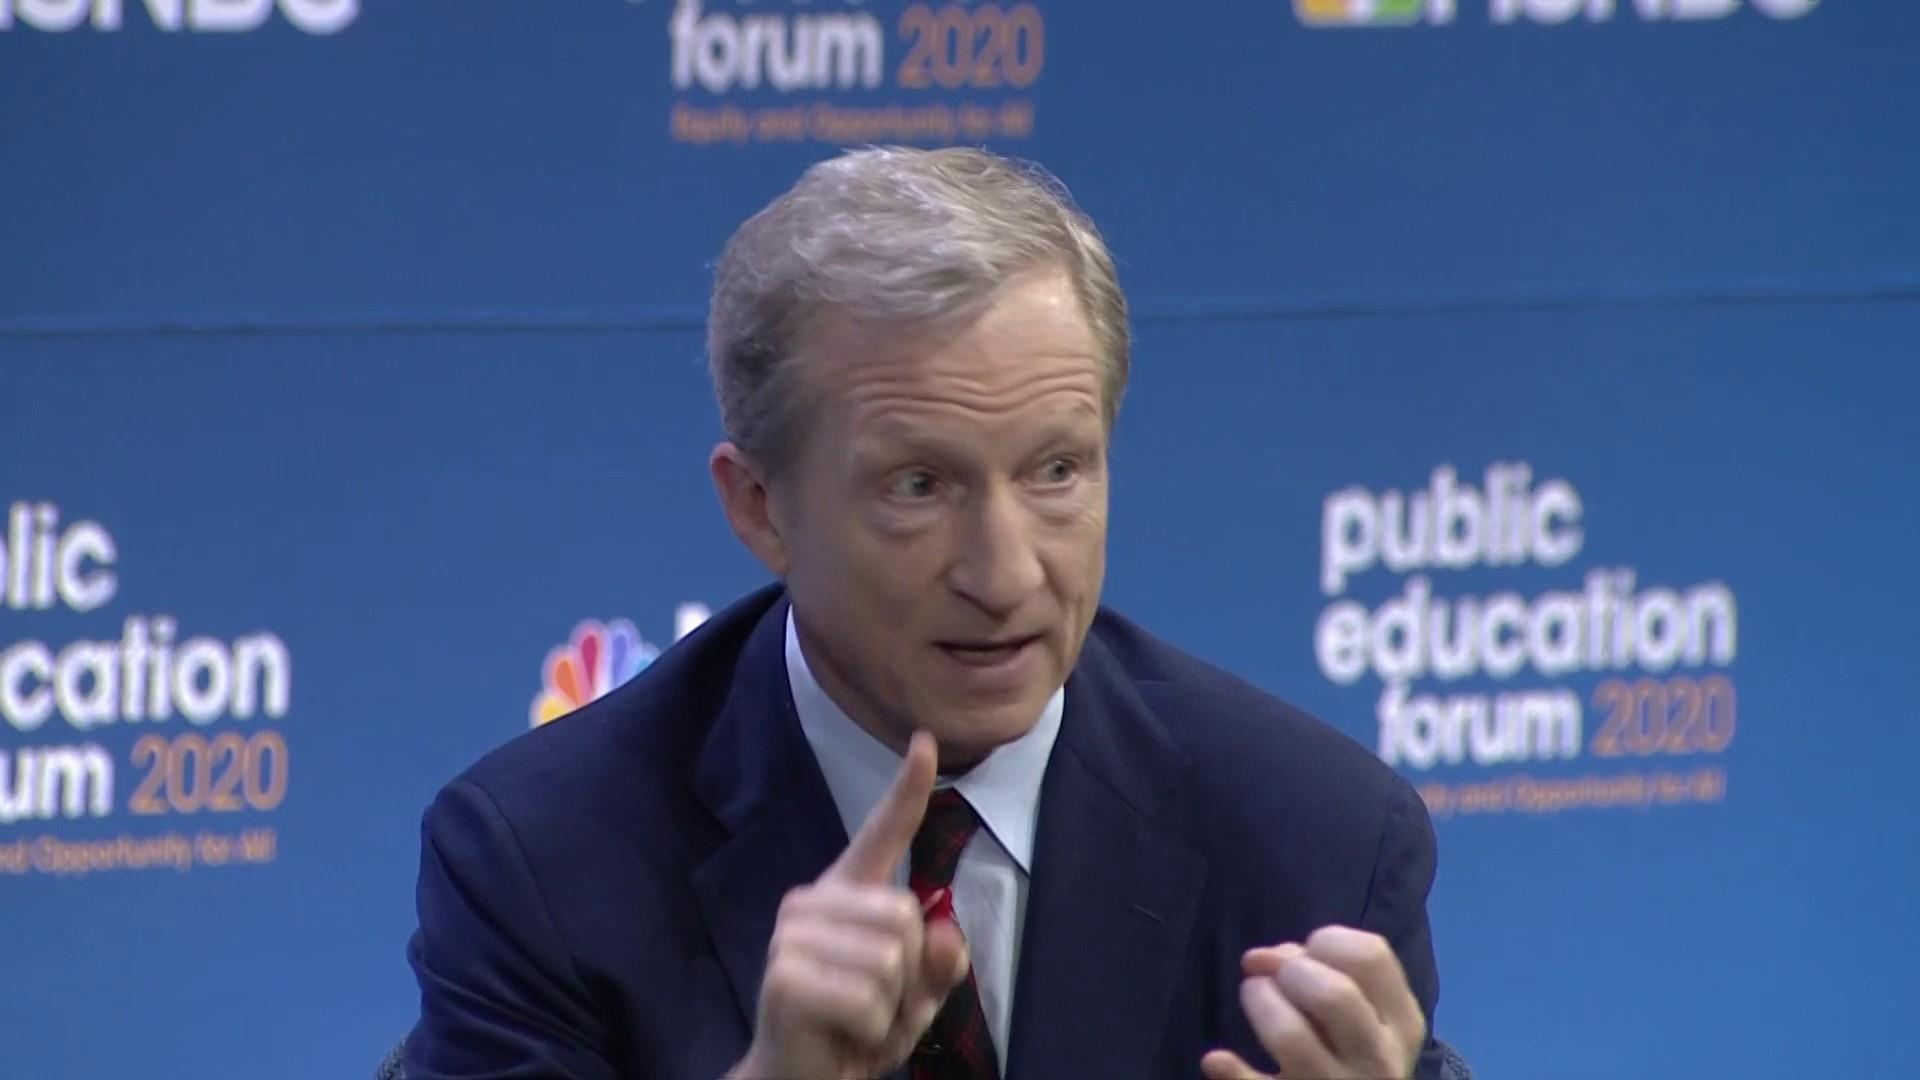 2020 candidate Tom Steyer says cutting education budgets to save money must end